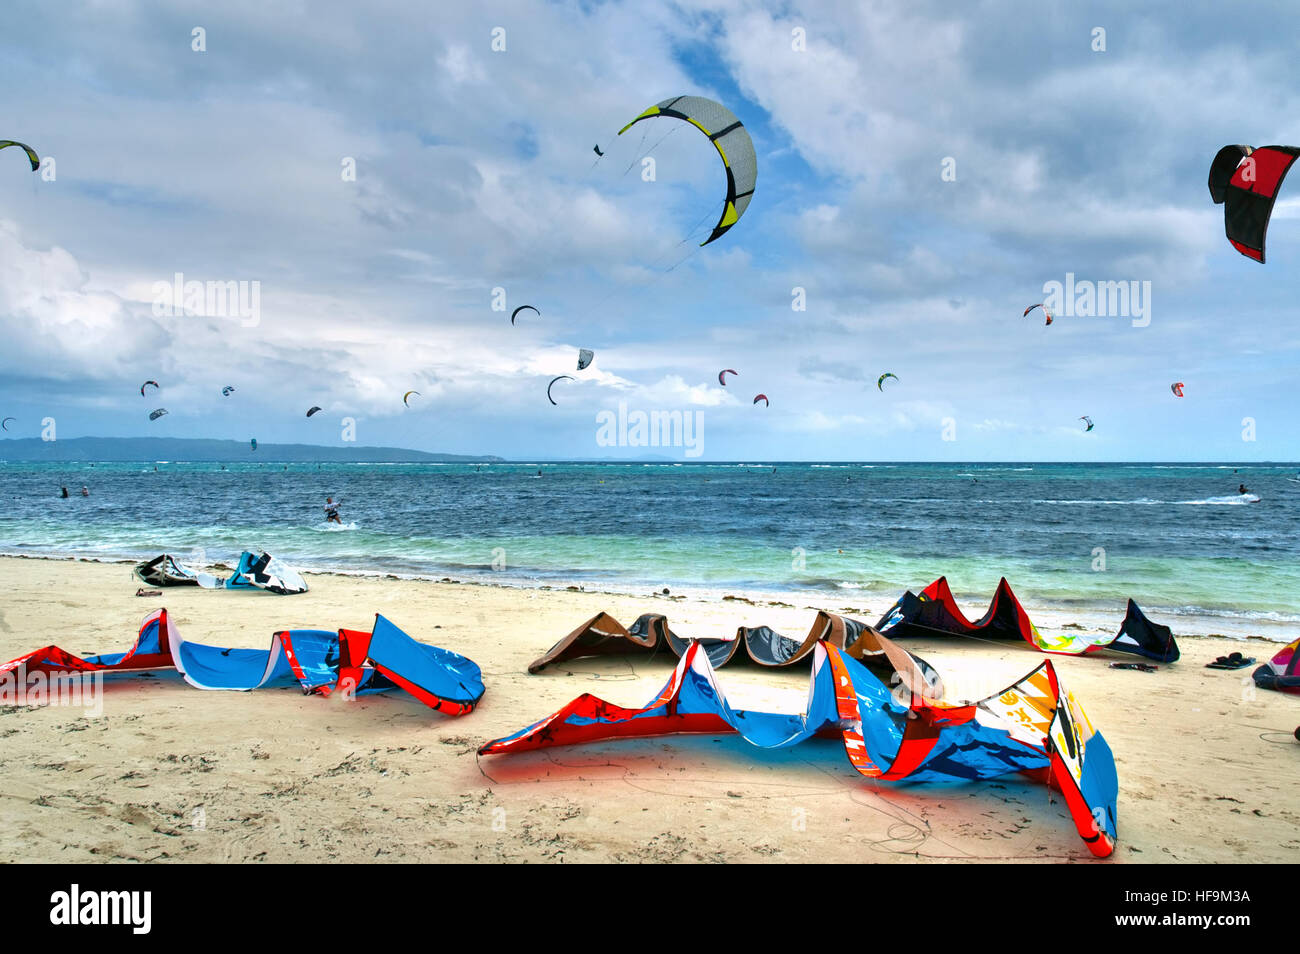 Colorful Kite surfing equipment laying  on a white sand beach in Boracay the Philippines - Stock Image